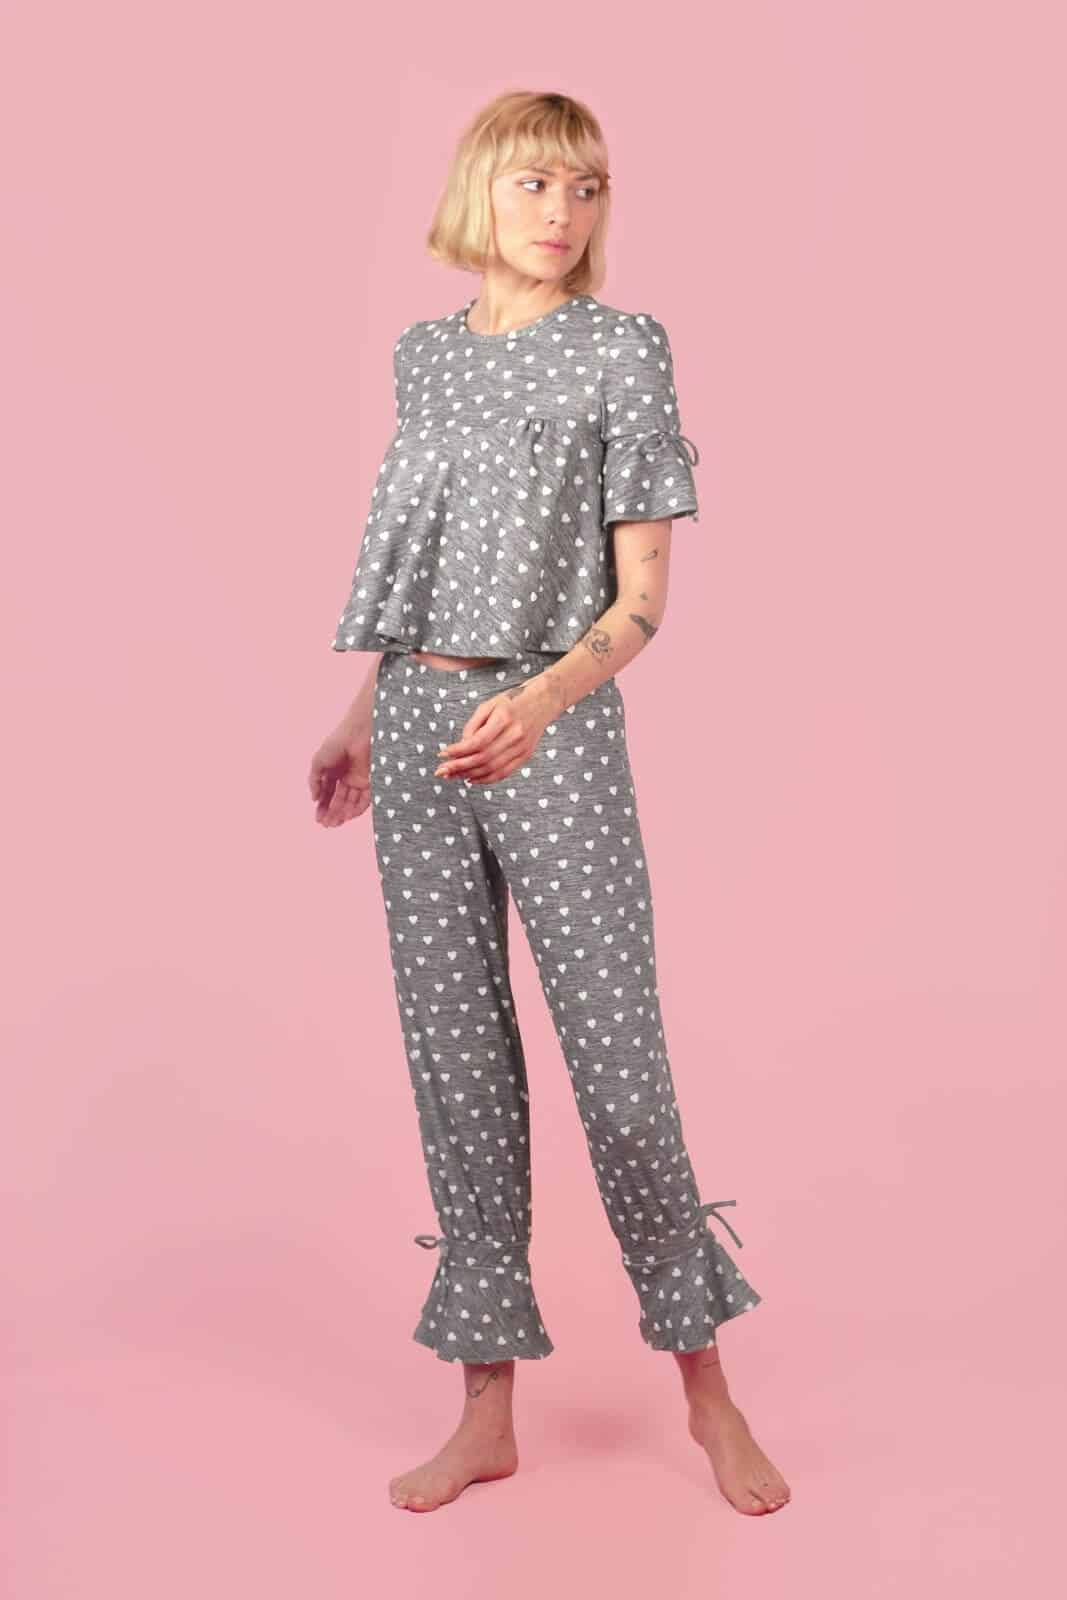 While some of you may prefer to sleep in your sustainable skivvies and others in some luxe lingerie, sometimes you just need a good old fashioned pair of lounge PJs Image by Evewear #fairtradepajamas #sustainablesleepwear